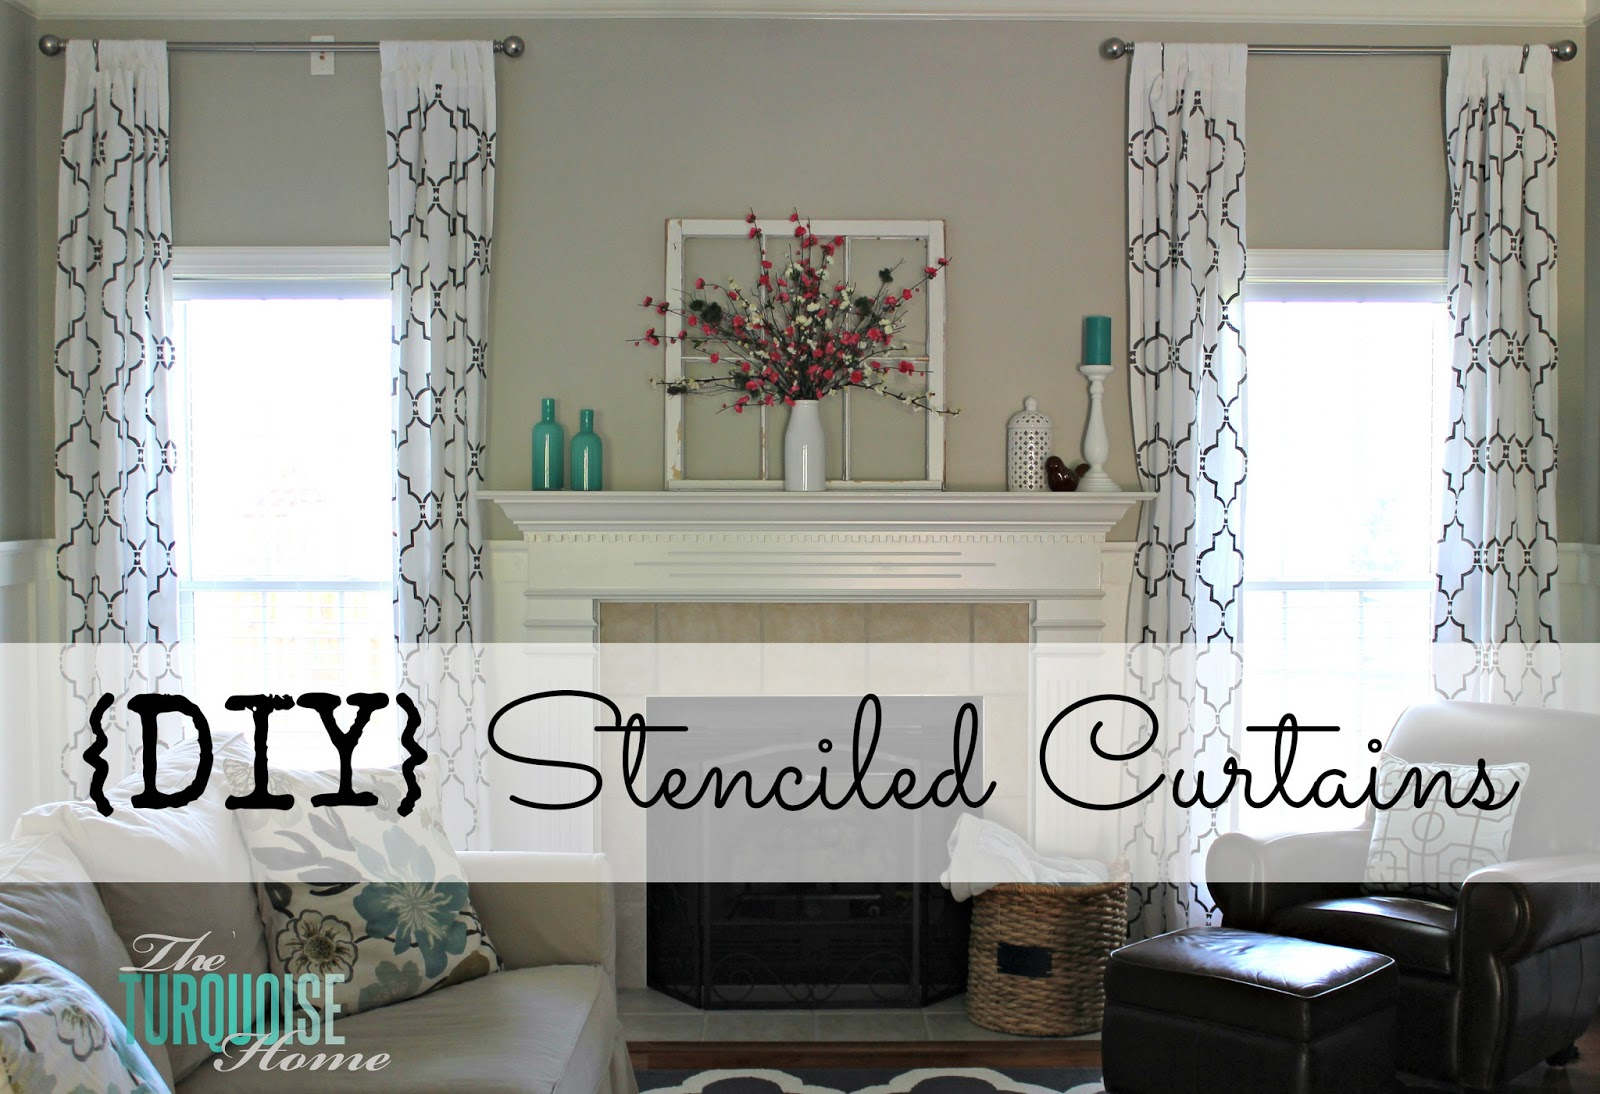 The Turquoise Home - stenciled curtains